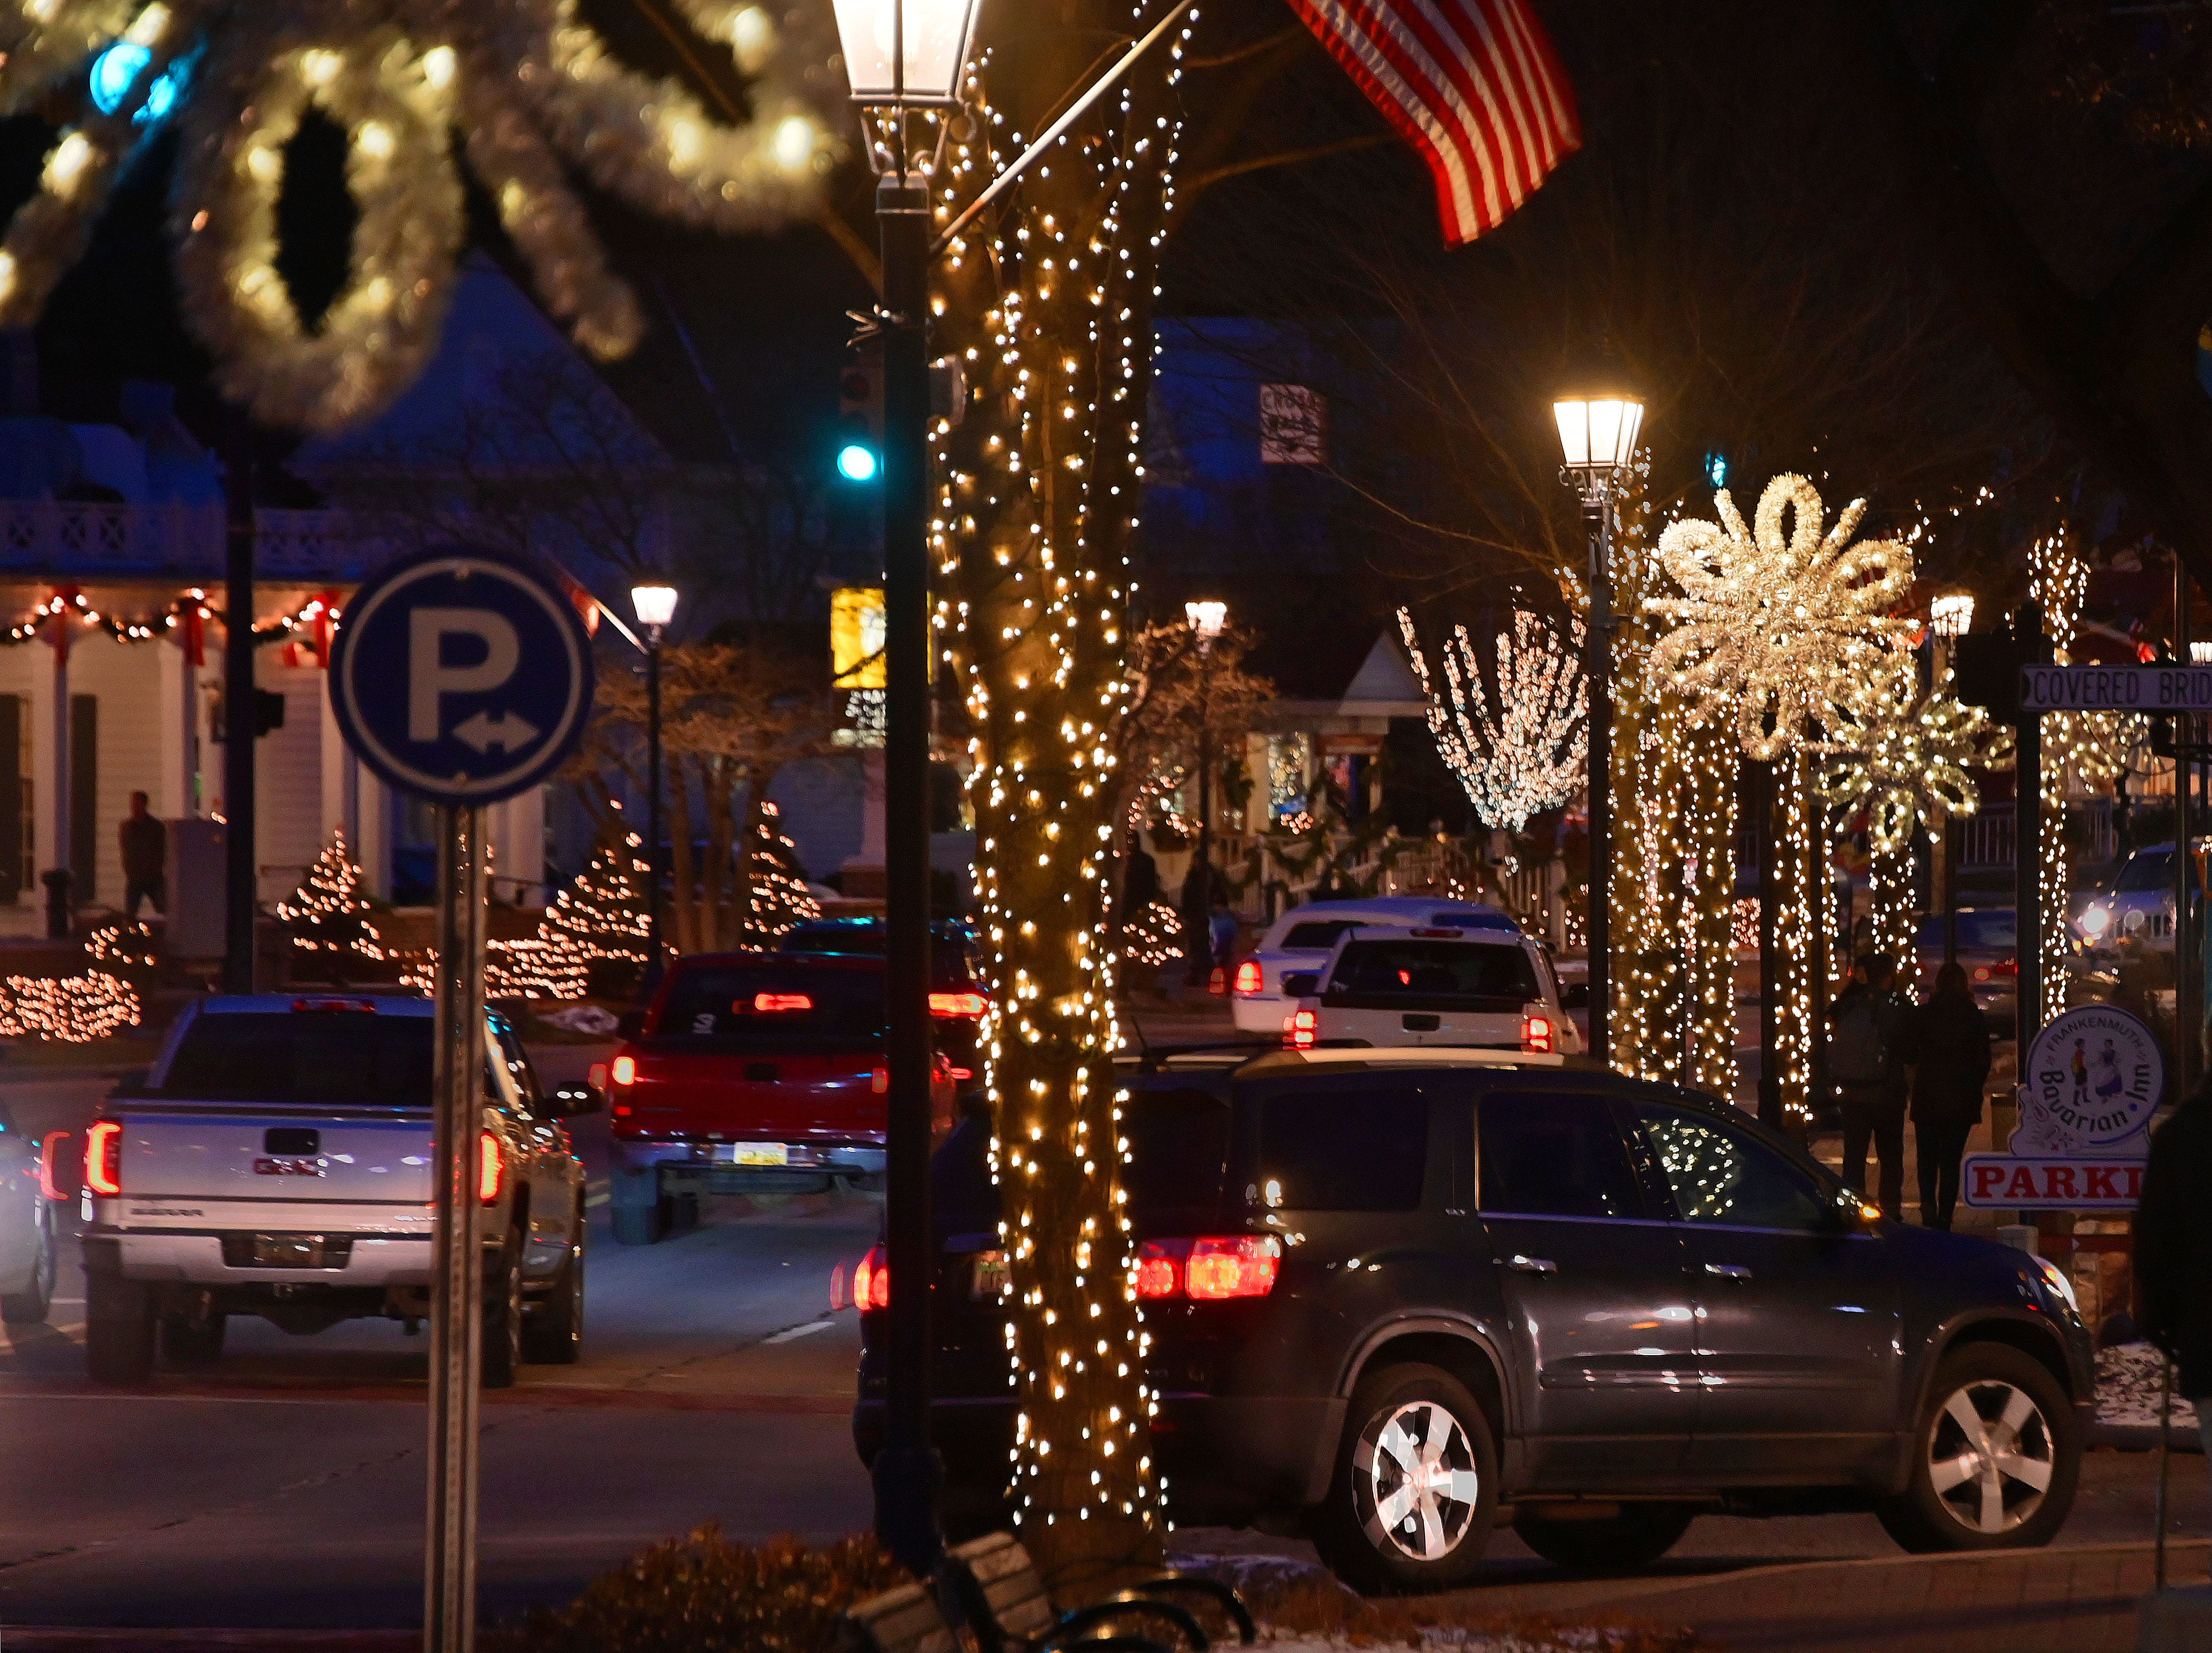 Downtown Frankenmuth is aglow Christmas lights and tail lights Just two weeks before Christmas.